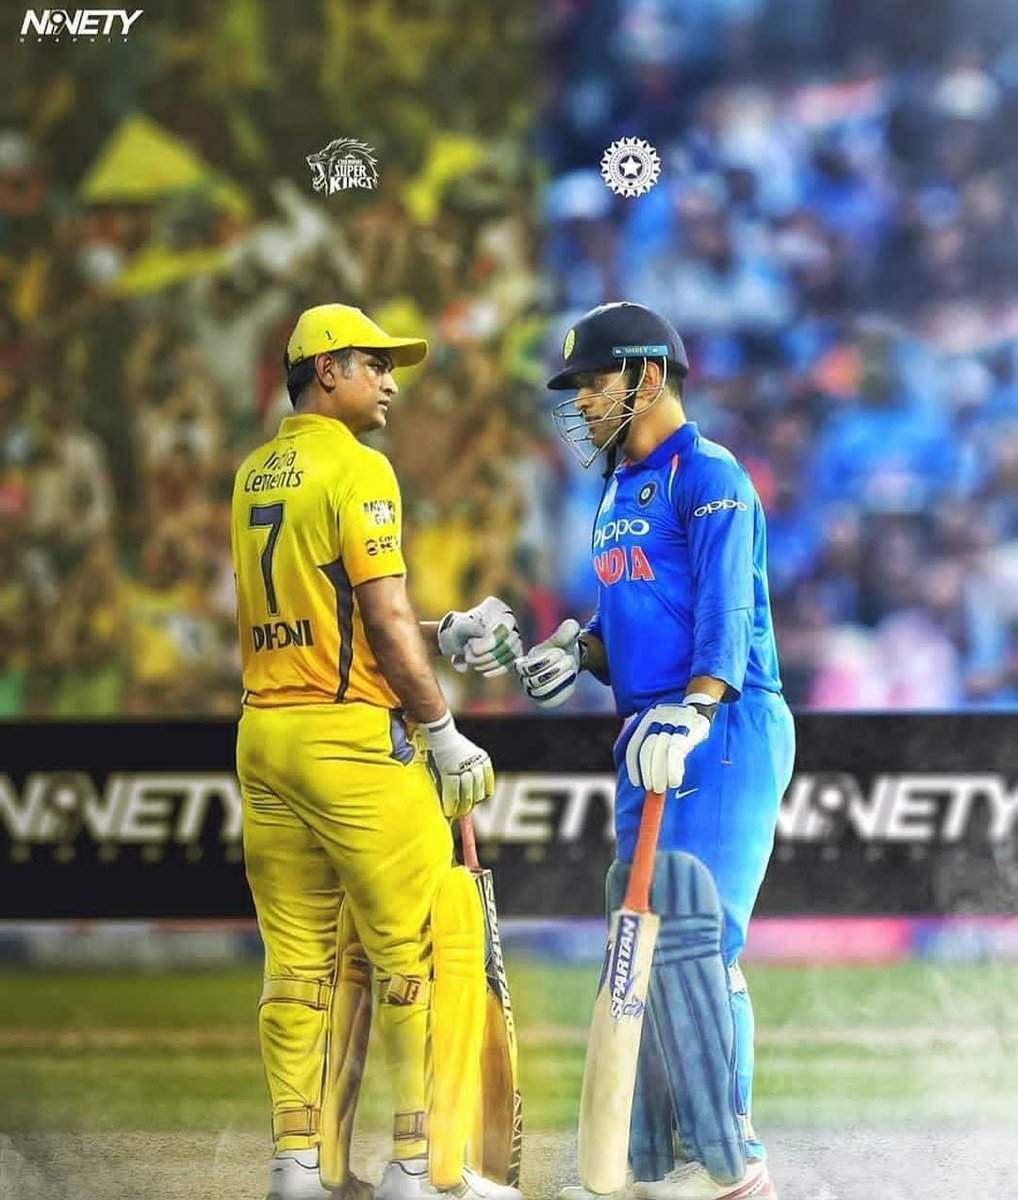 From Bleed Blue to Yellove, Mahi to Thala,  One Man, A Million Emotions!@msdhoni @ChennaiIPL #MSDhonipic.twitter.com/ERYGtJgoR0